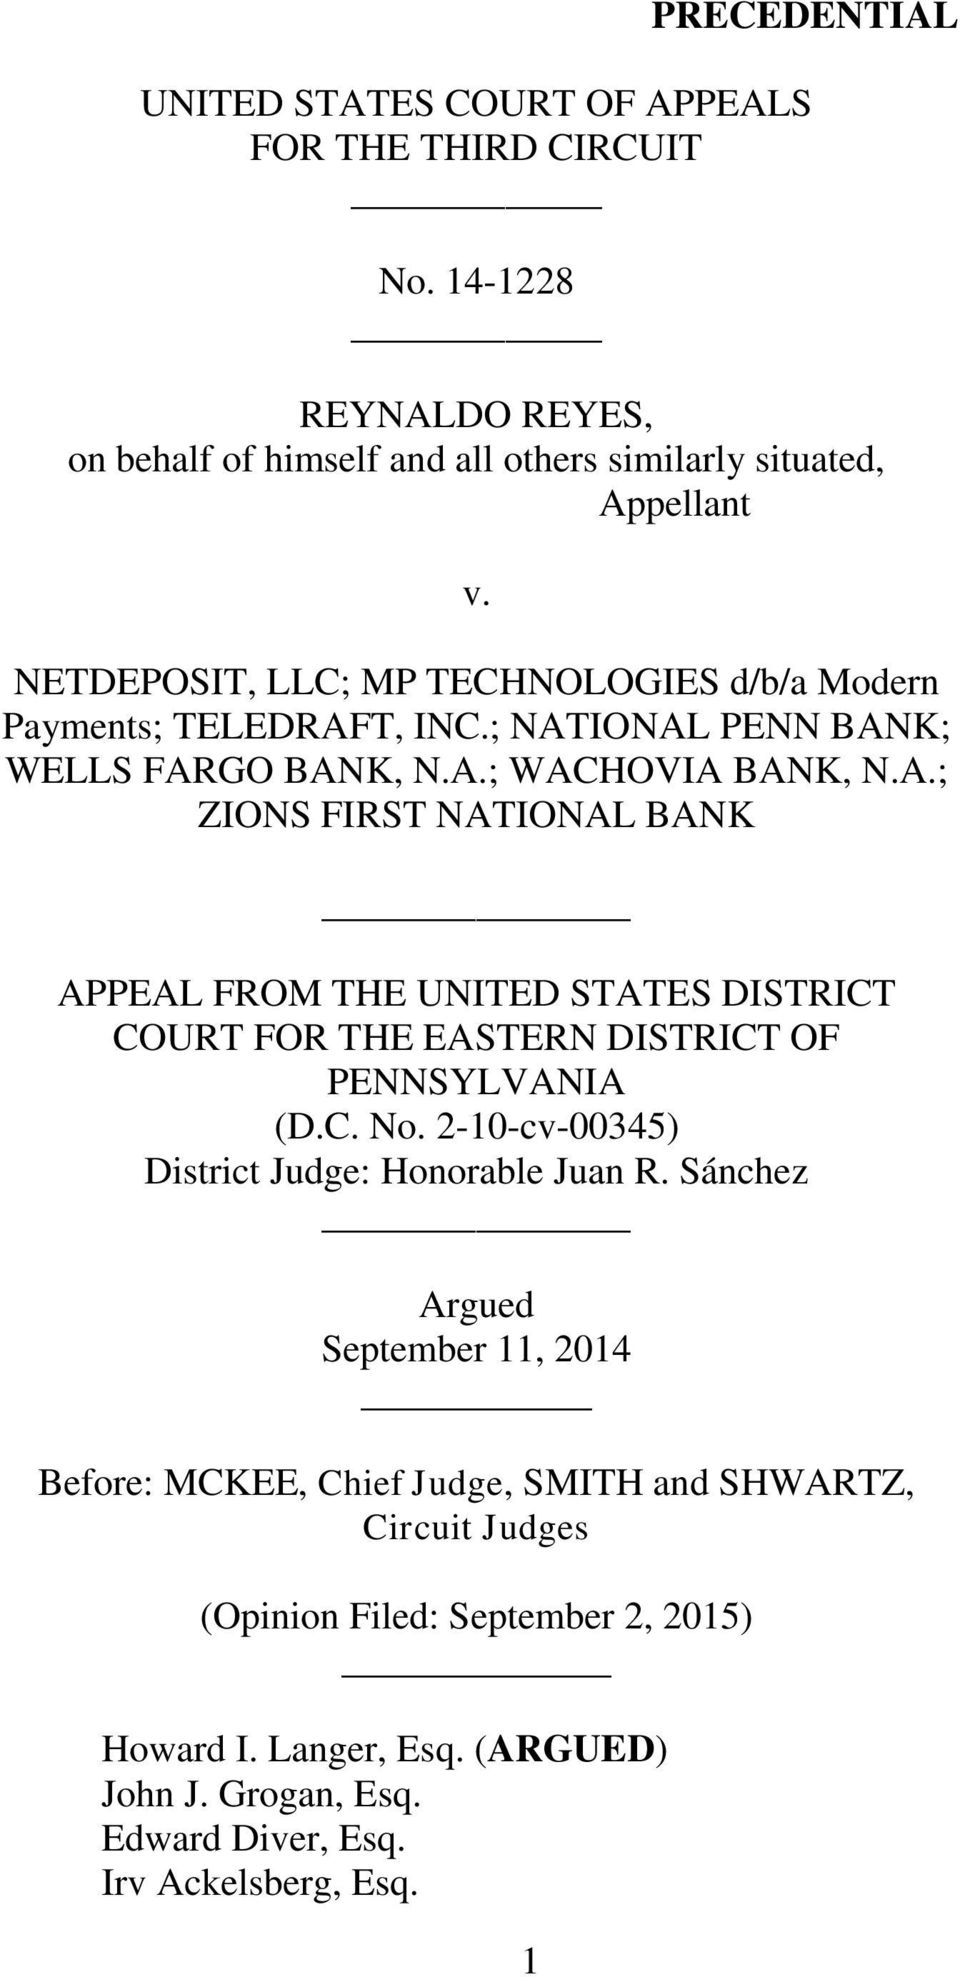 T, INC.; NATIONAL PENN BANK; WELLS FARGO BANK, N.A.; WACHOVIA BANK, N.A.; ZIONS FIRST NATIONAL BANK APPEAL FROM THE UNITED STATES DISTRICT COURT FOR THE EASTERN DISTRICT OF PENNSYLVANIA (D.